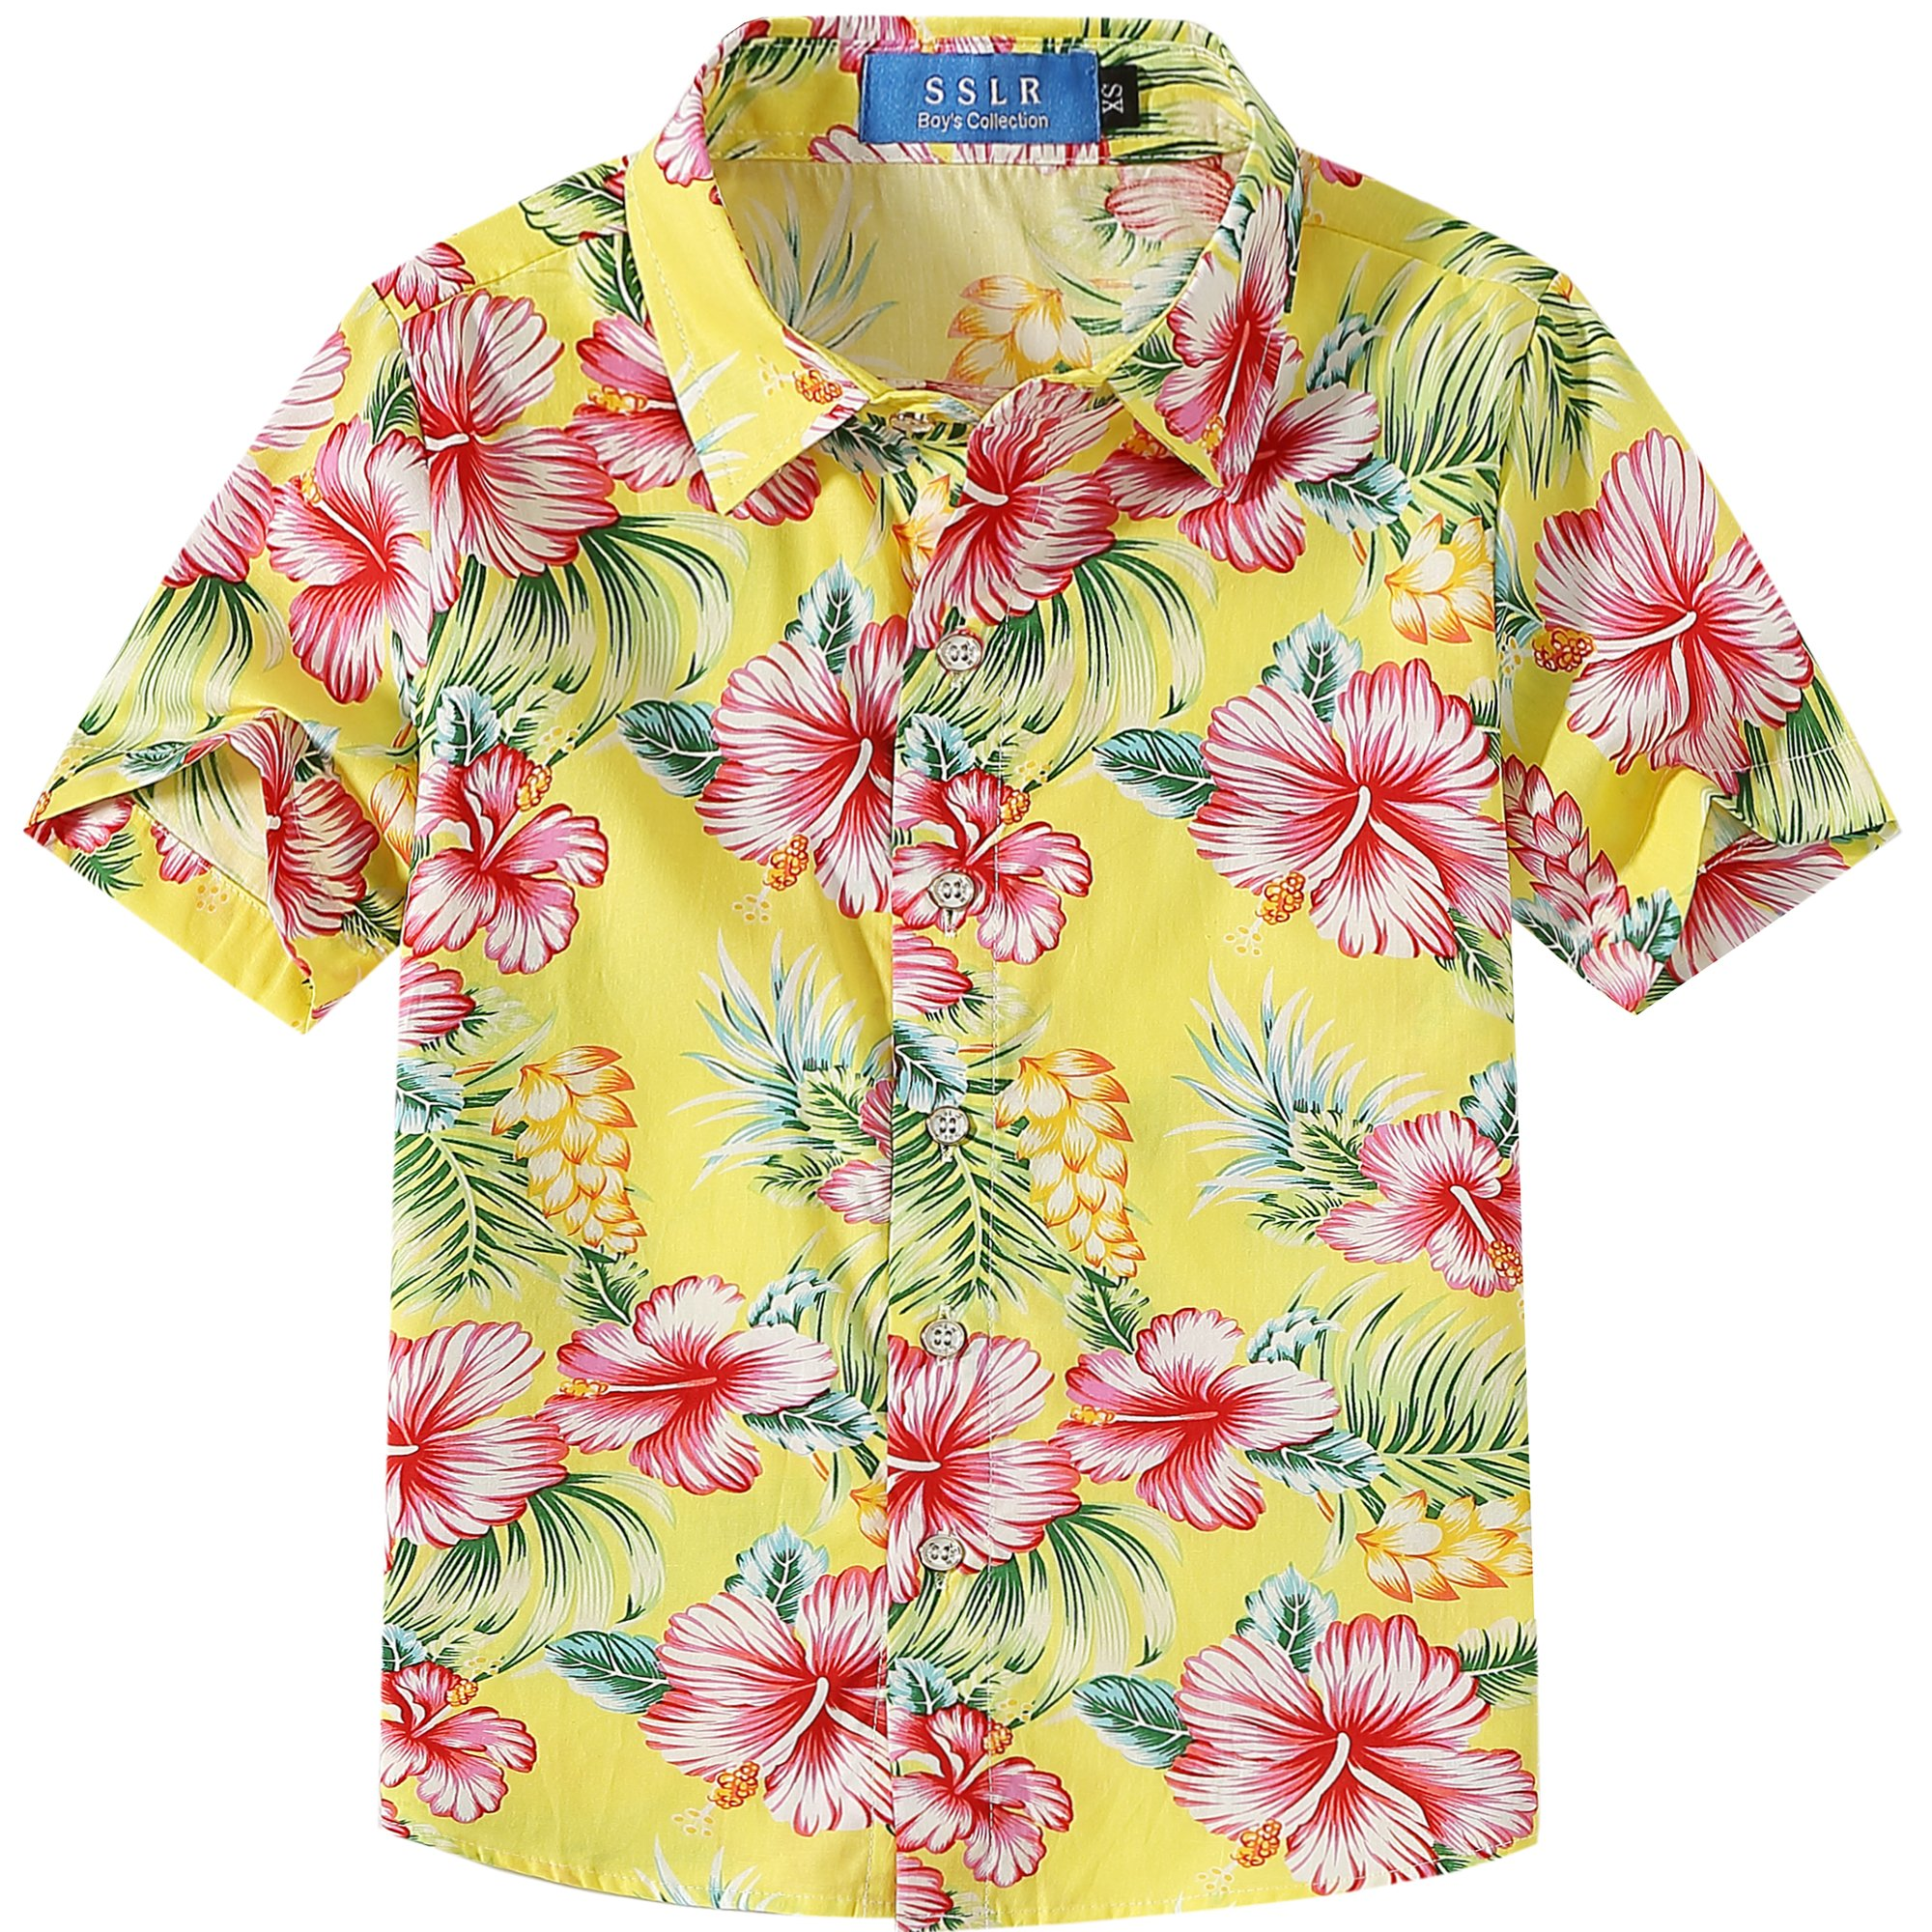 SSLR Big Boy's Hibiscus Cotton Short Sleeve Casual Button Down Hawaiian Shirt (X-Large(18-20), Bright Yellow) by SSLR (Image #1)